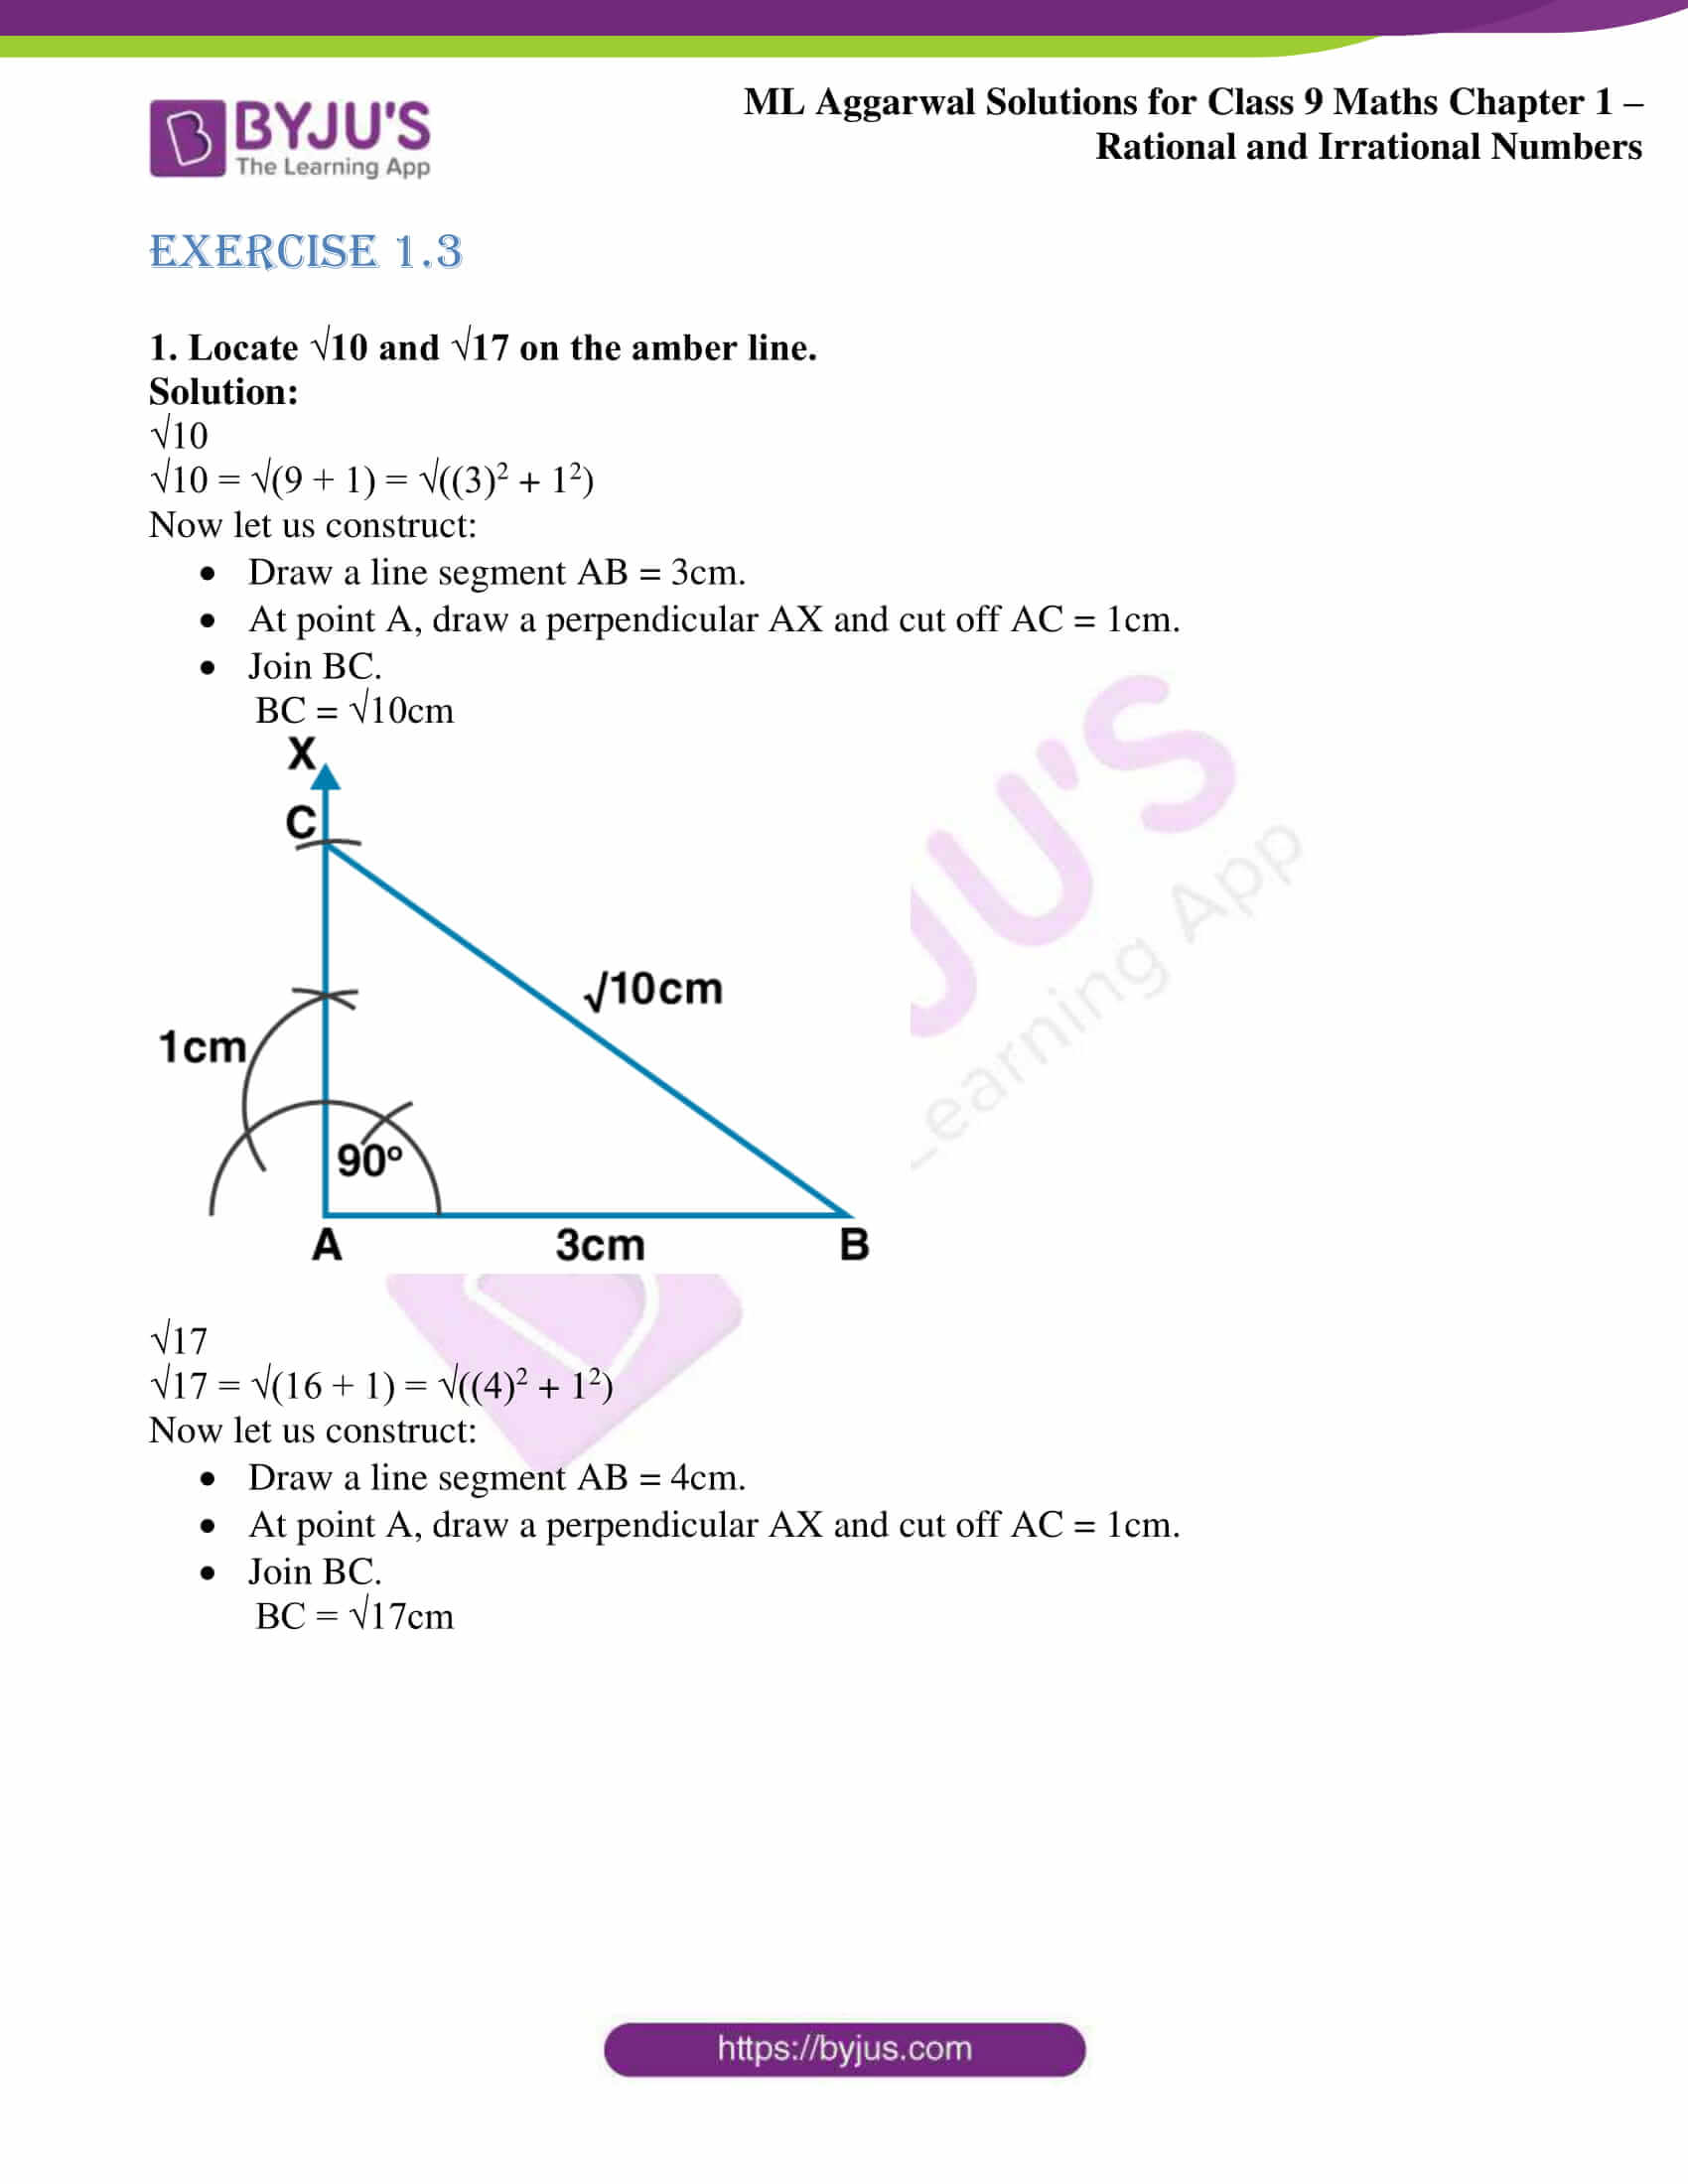 ml aggarwal solutions for class 9 maths chapter 1 15